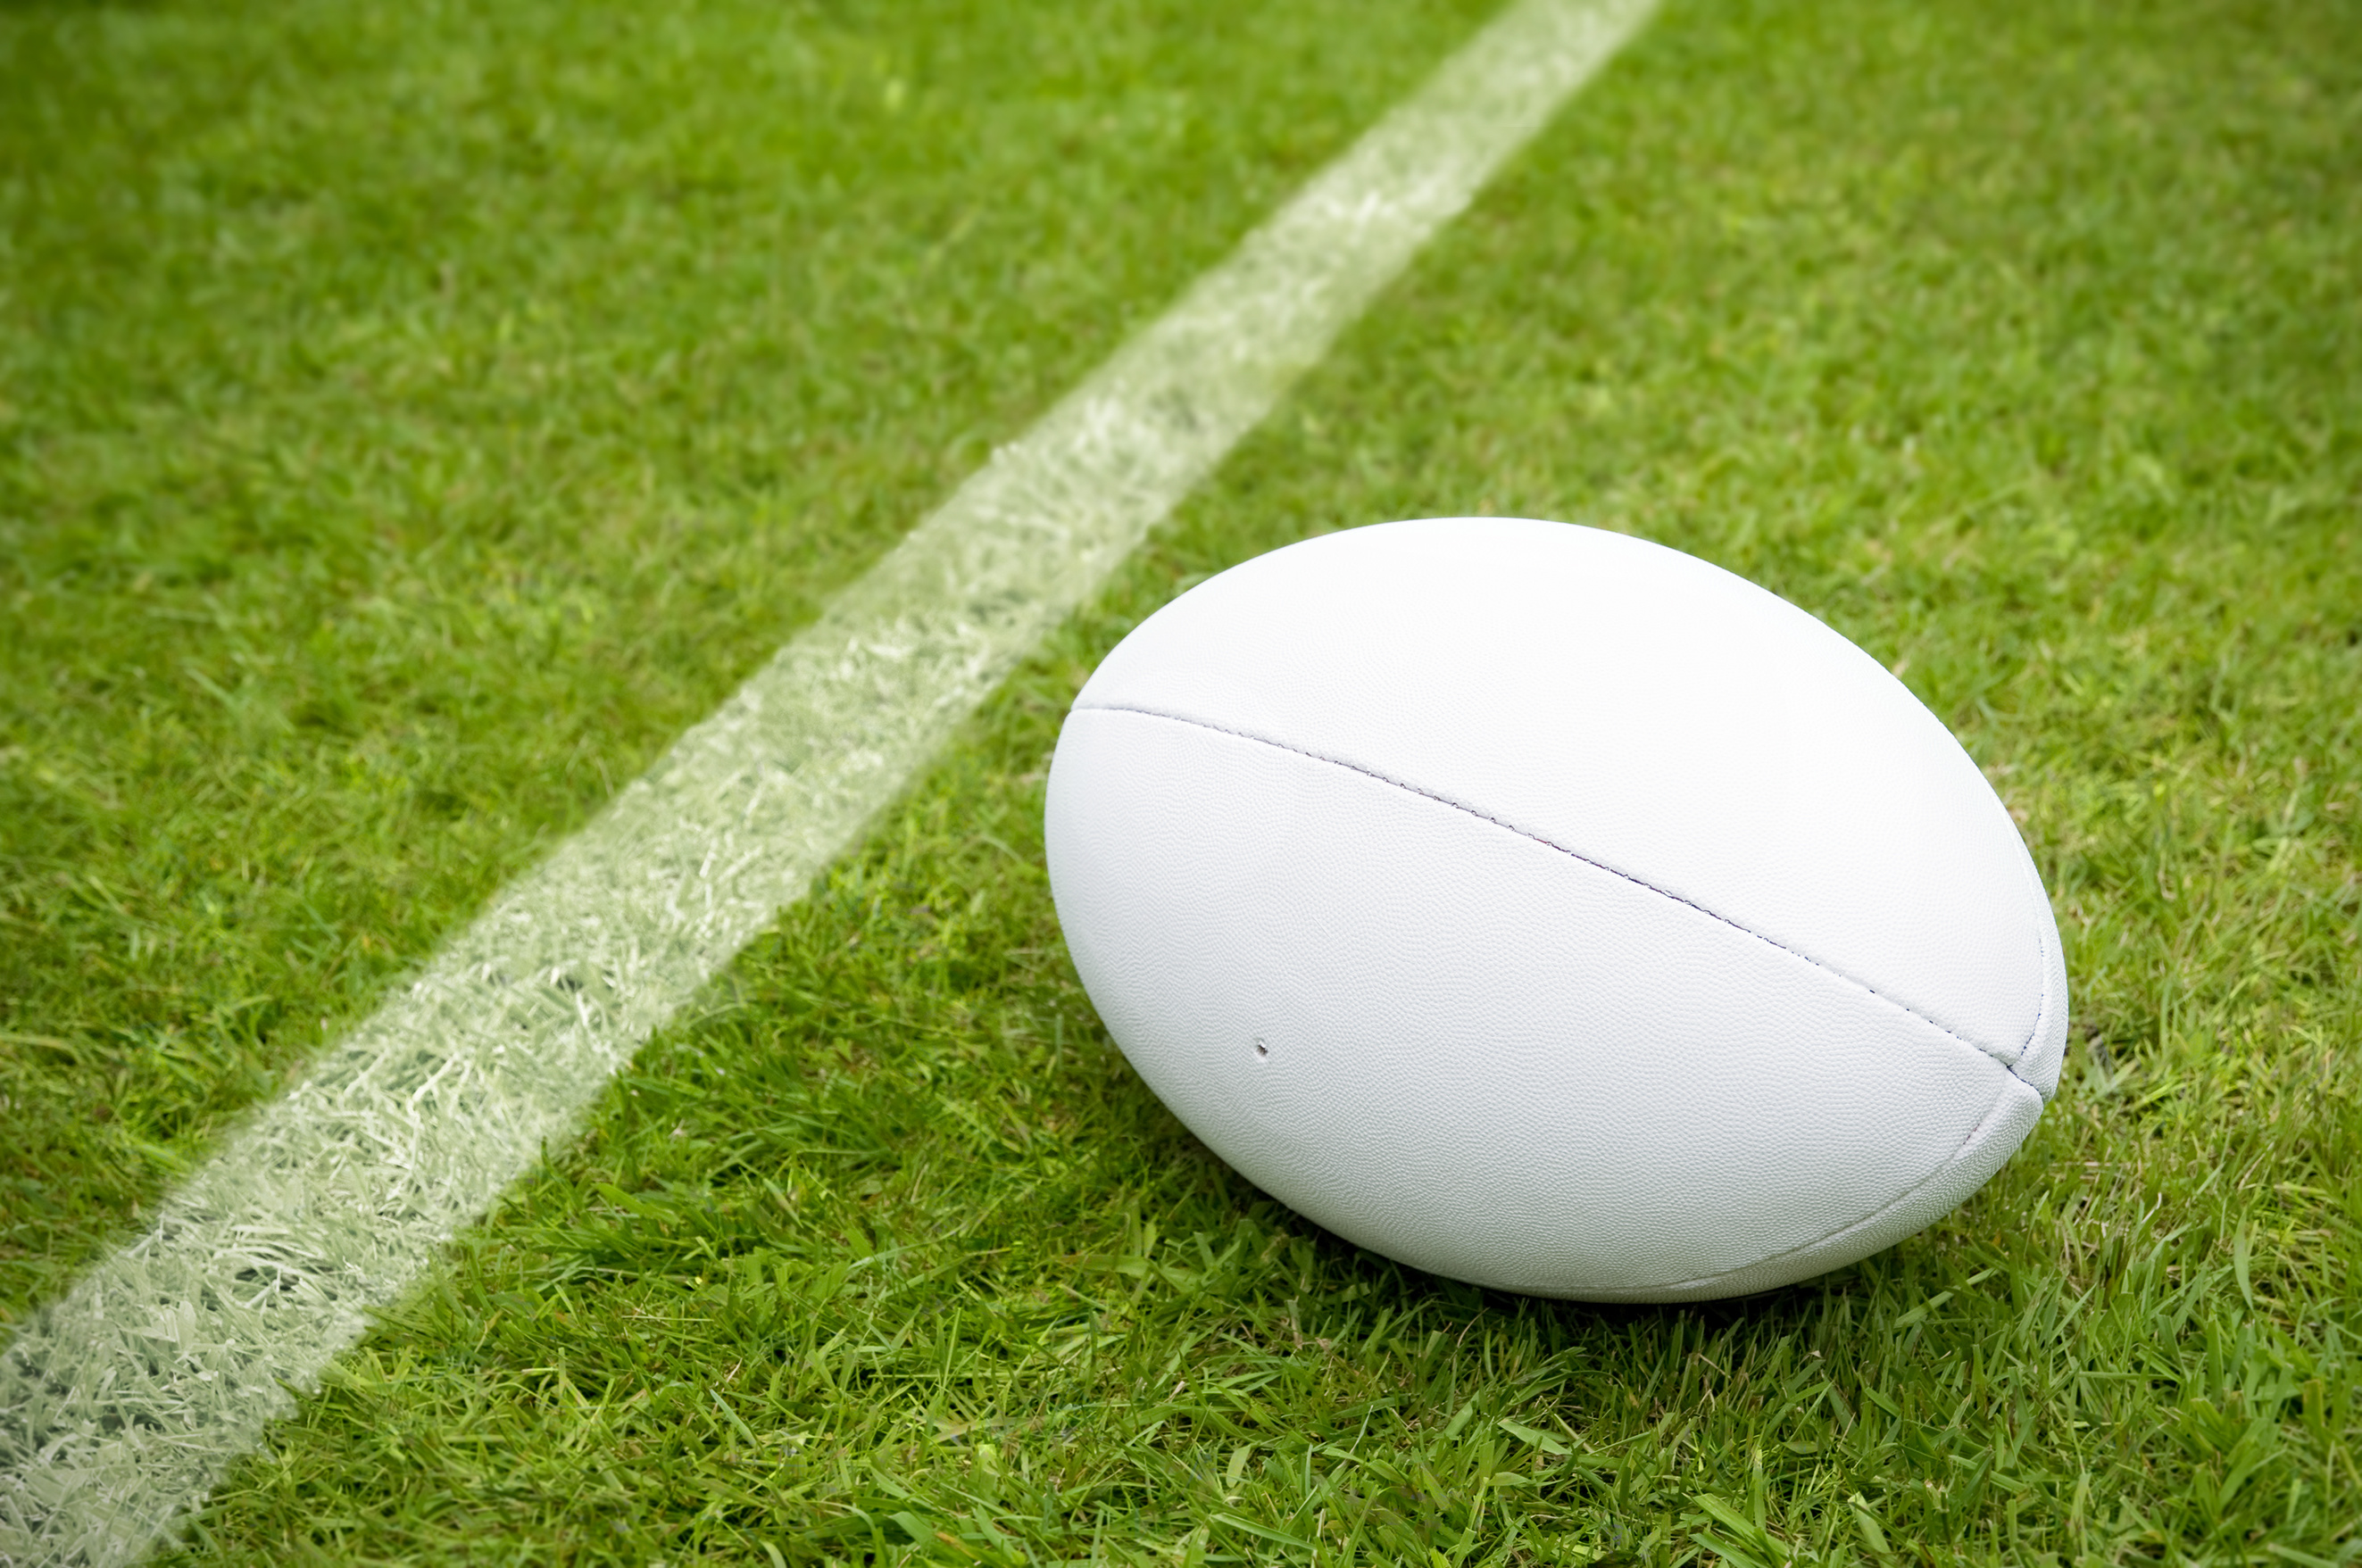 Landscape Garden Rugby : Rugby ball near try line on pitch